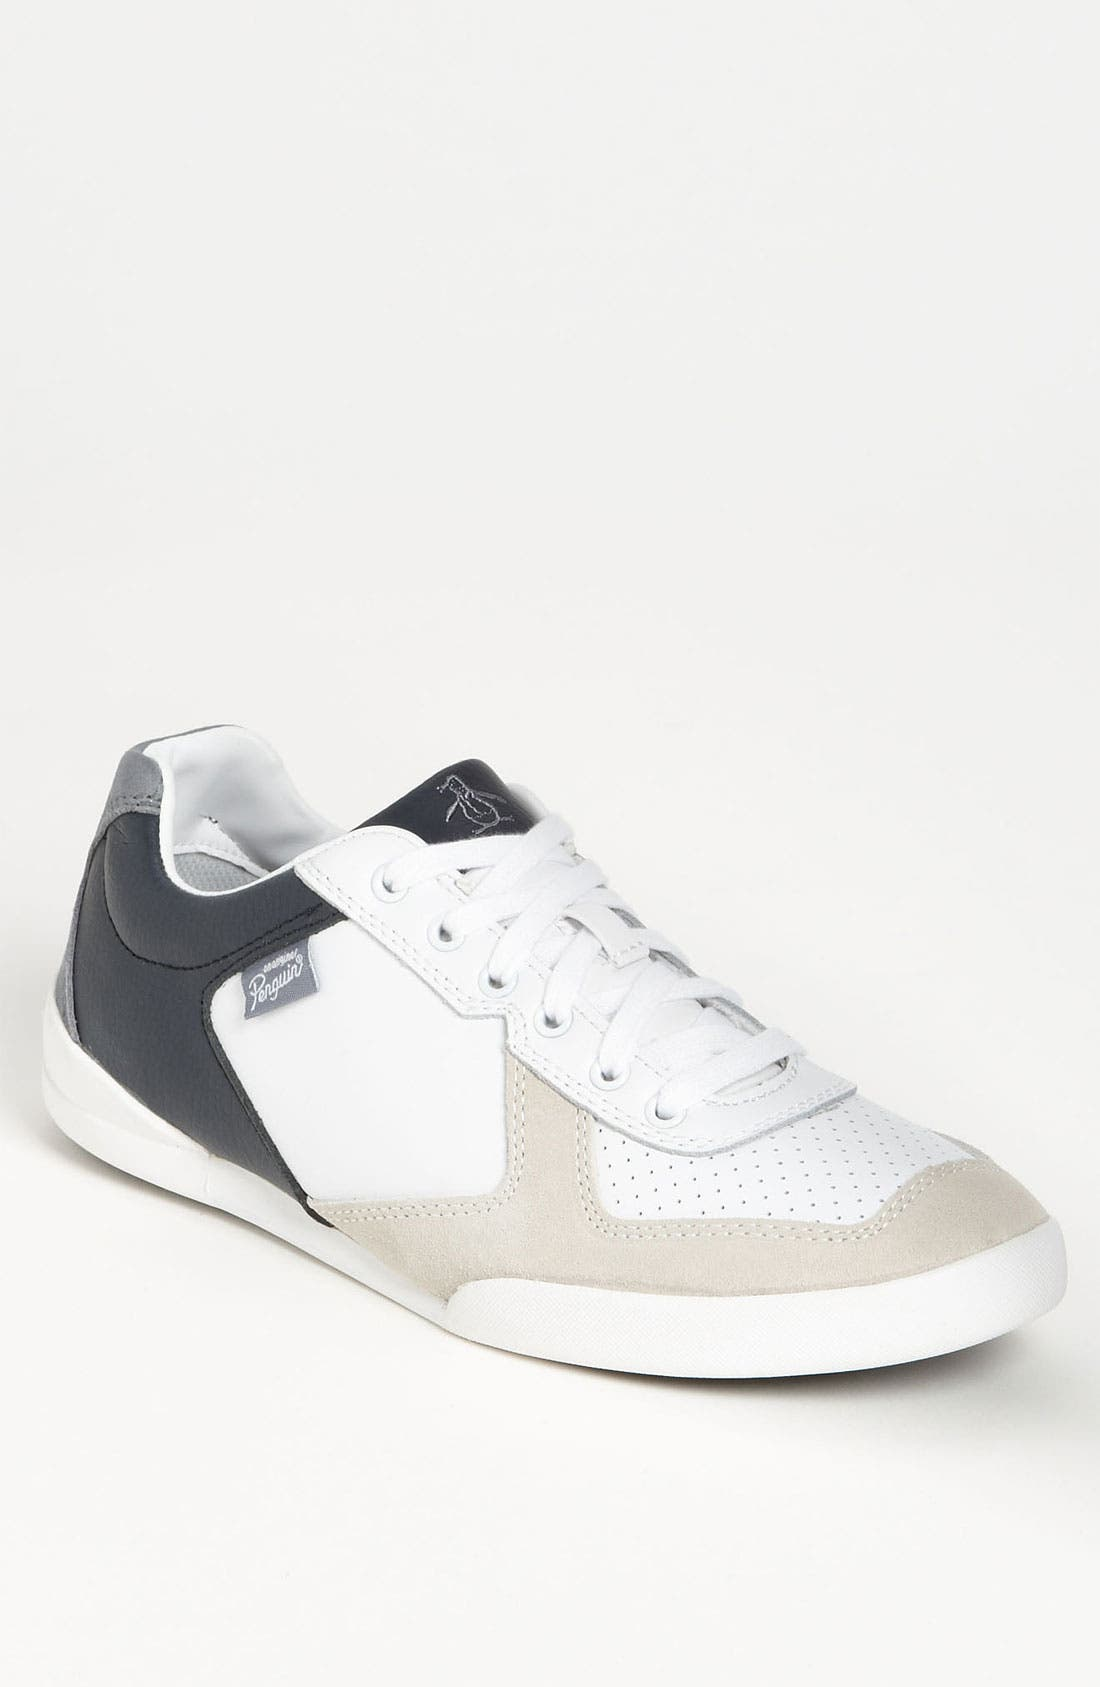 Alternate Image 1 Selected - Original Penguin 'Fandango' Sneaker